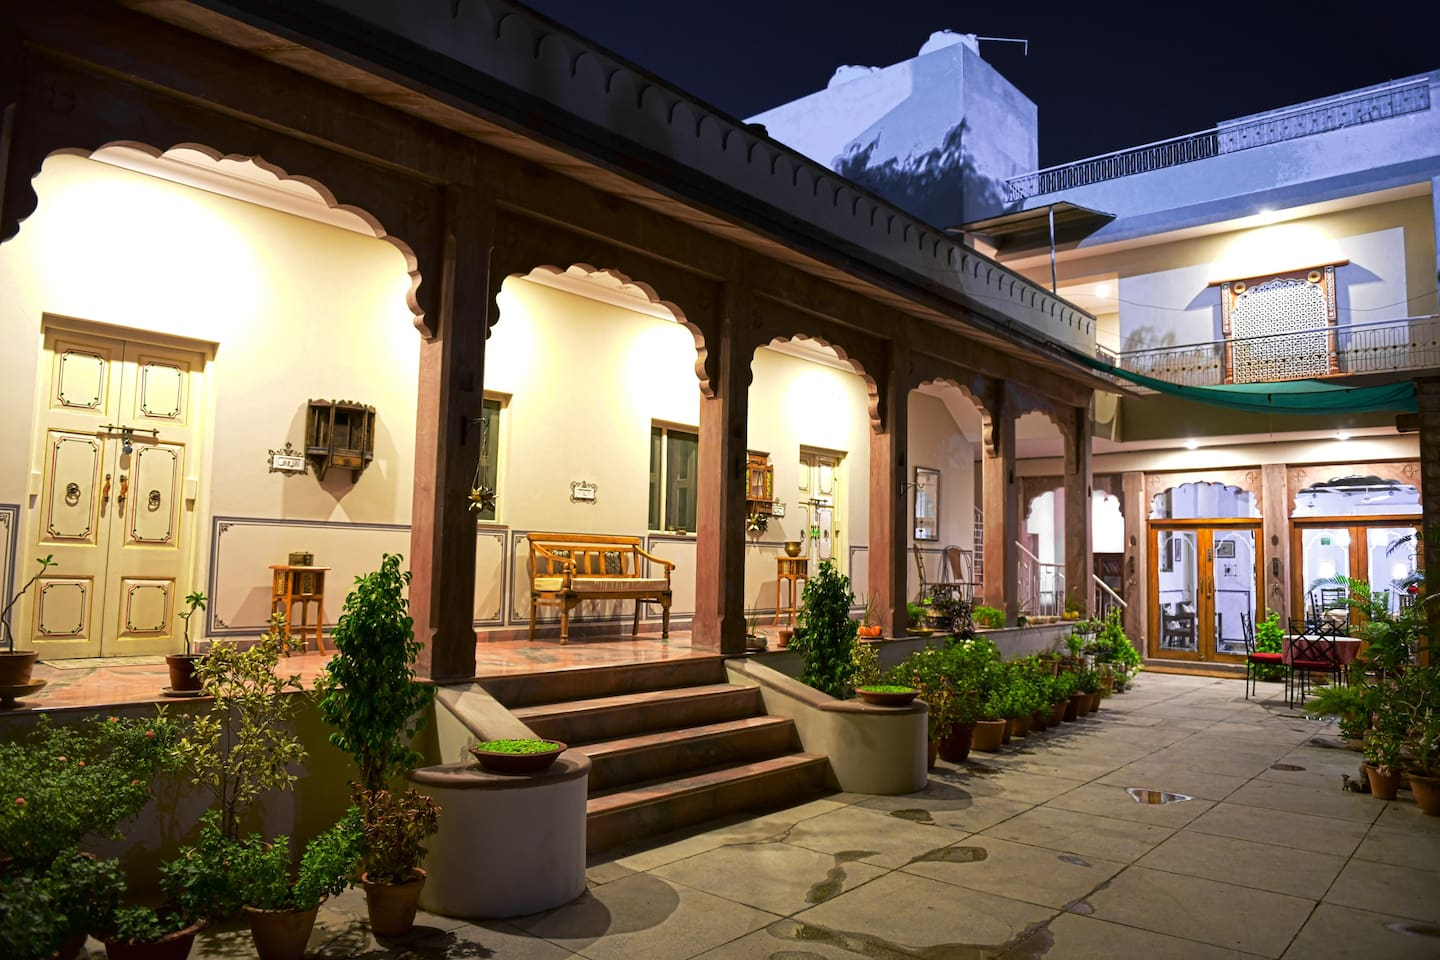 A private, cozy hideout, having 3 ground floor rooms and 2 rooms on the 1st floor. The dining room is located on the ground  floor. These rooms have a spacious courtyard to unwind, with lots of potted plants. This is a night view of the front facade.